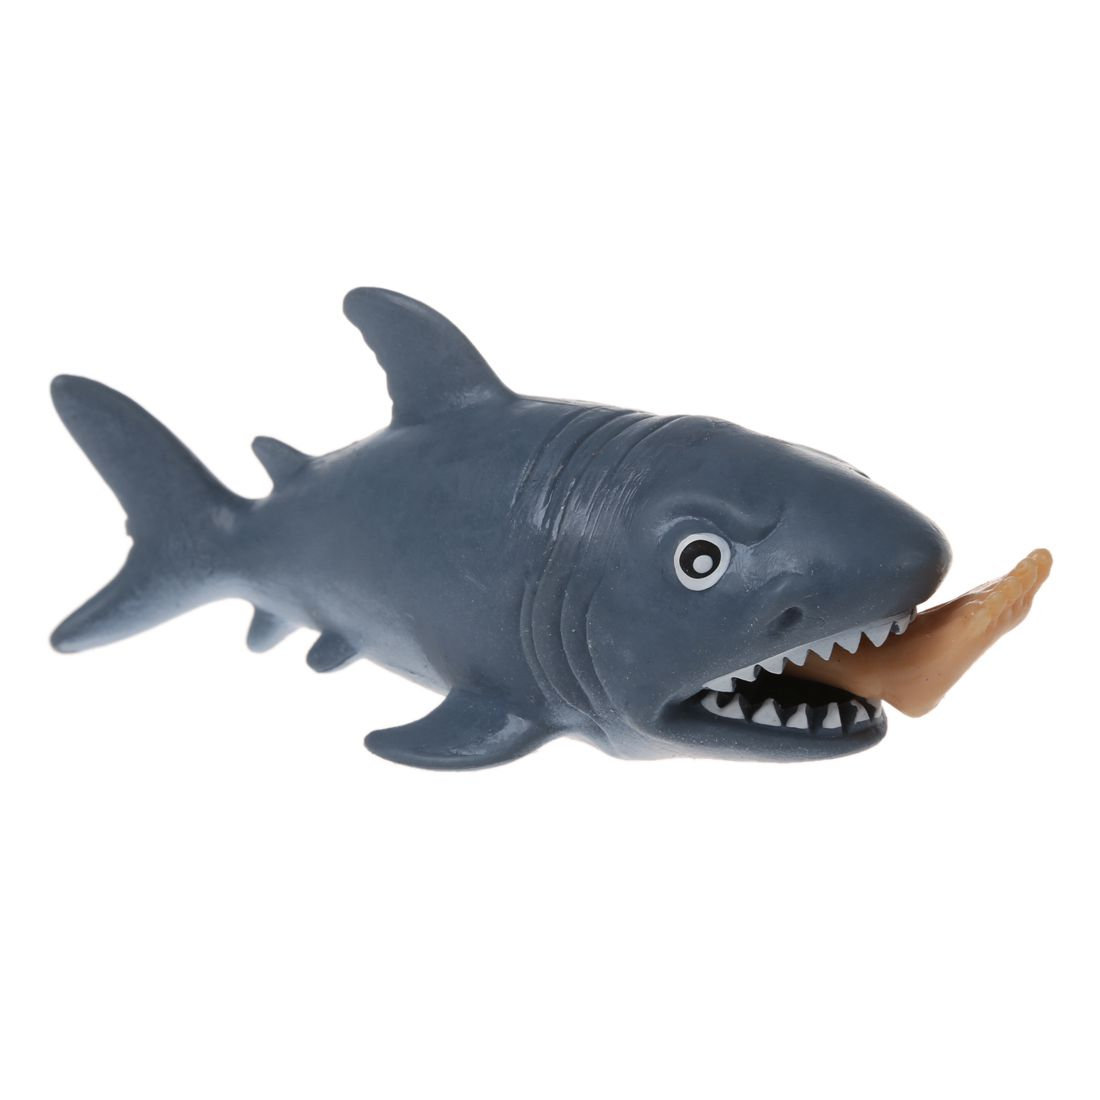 ABWE Best Sale Funny Man-eating Shark Toy Scary eat leg Animal Prank Wacky Squeezing Stress Toy April Fools gift for kids